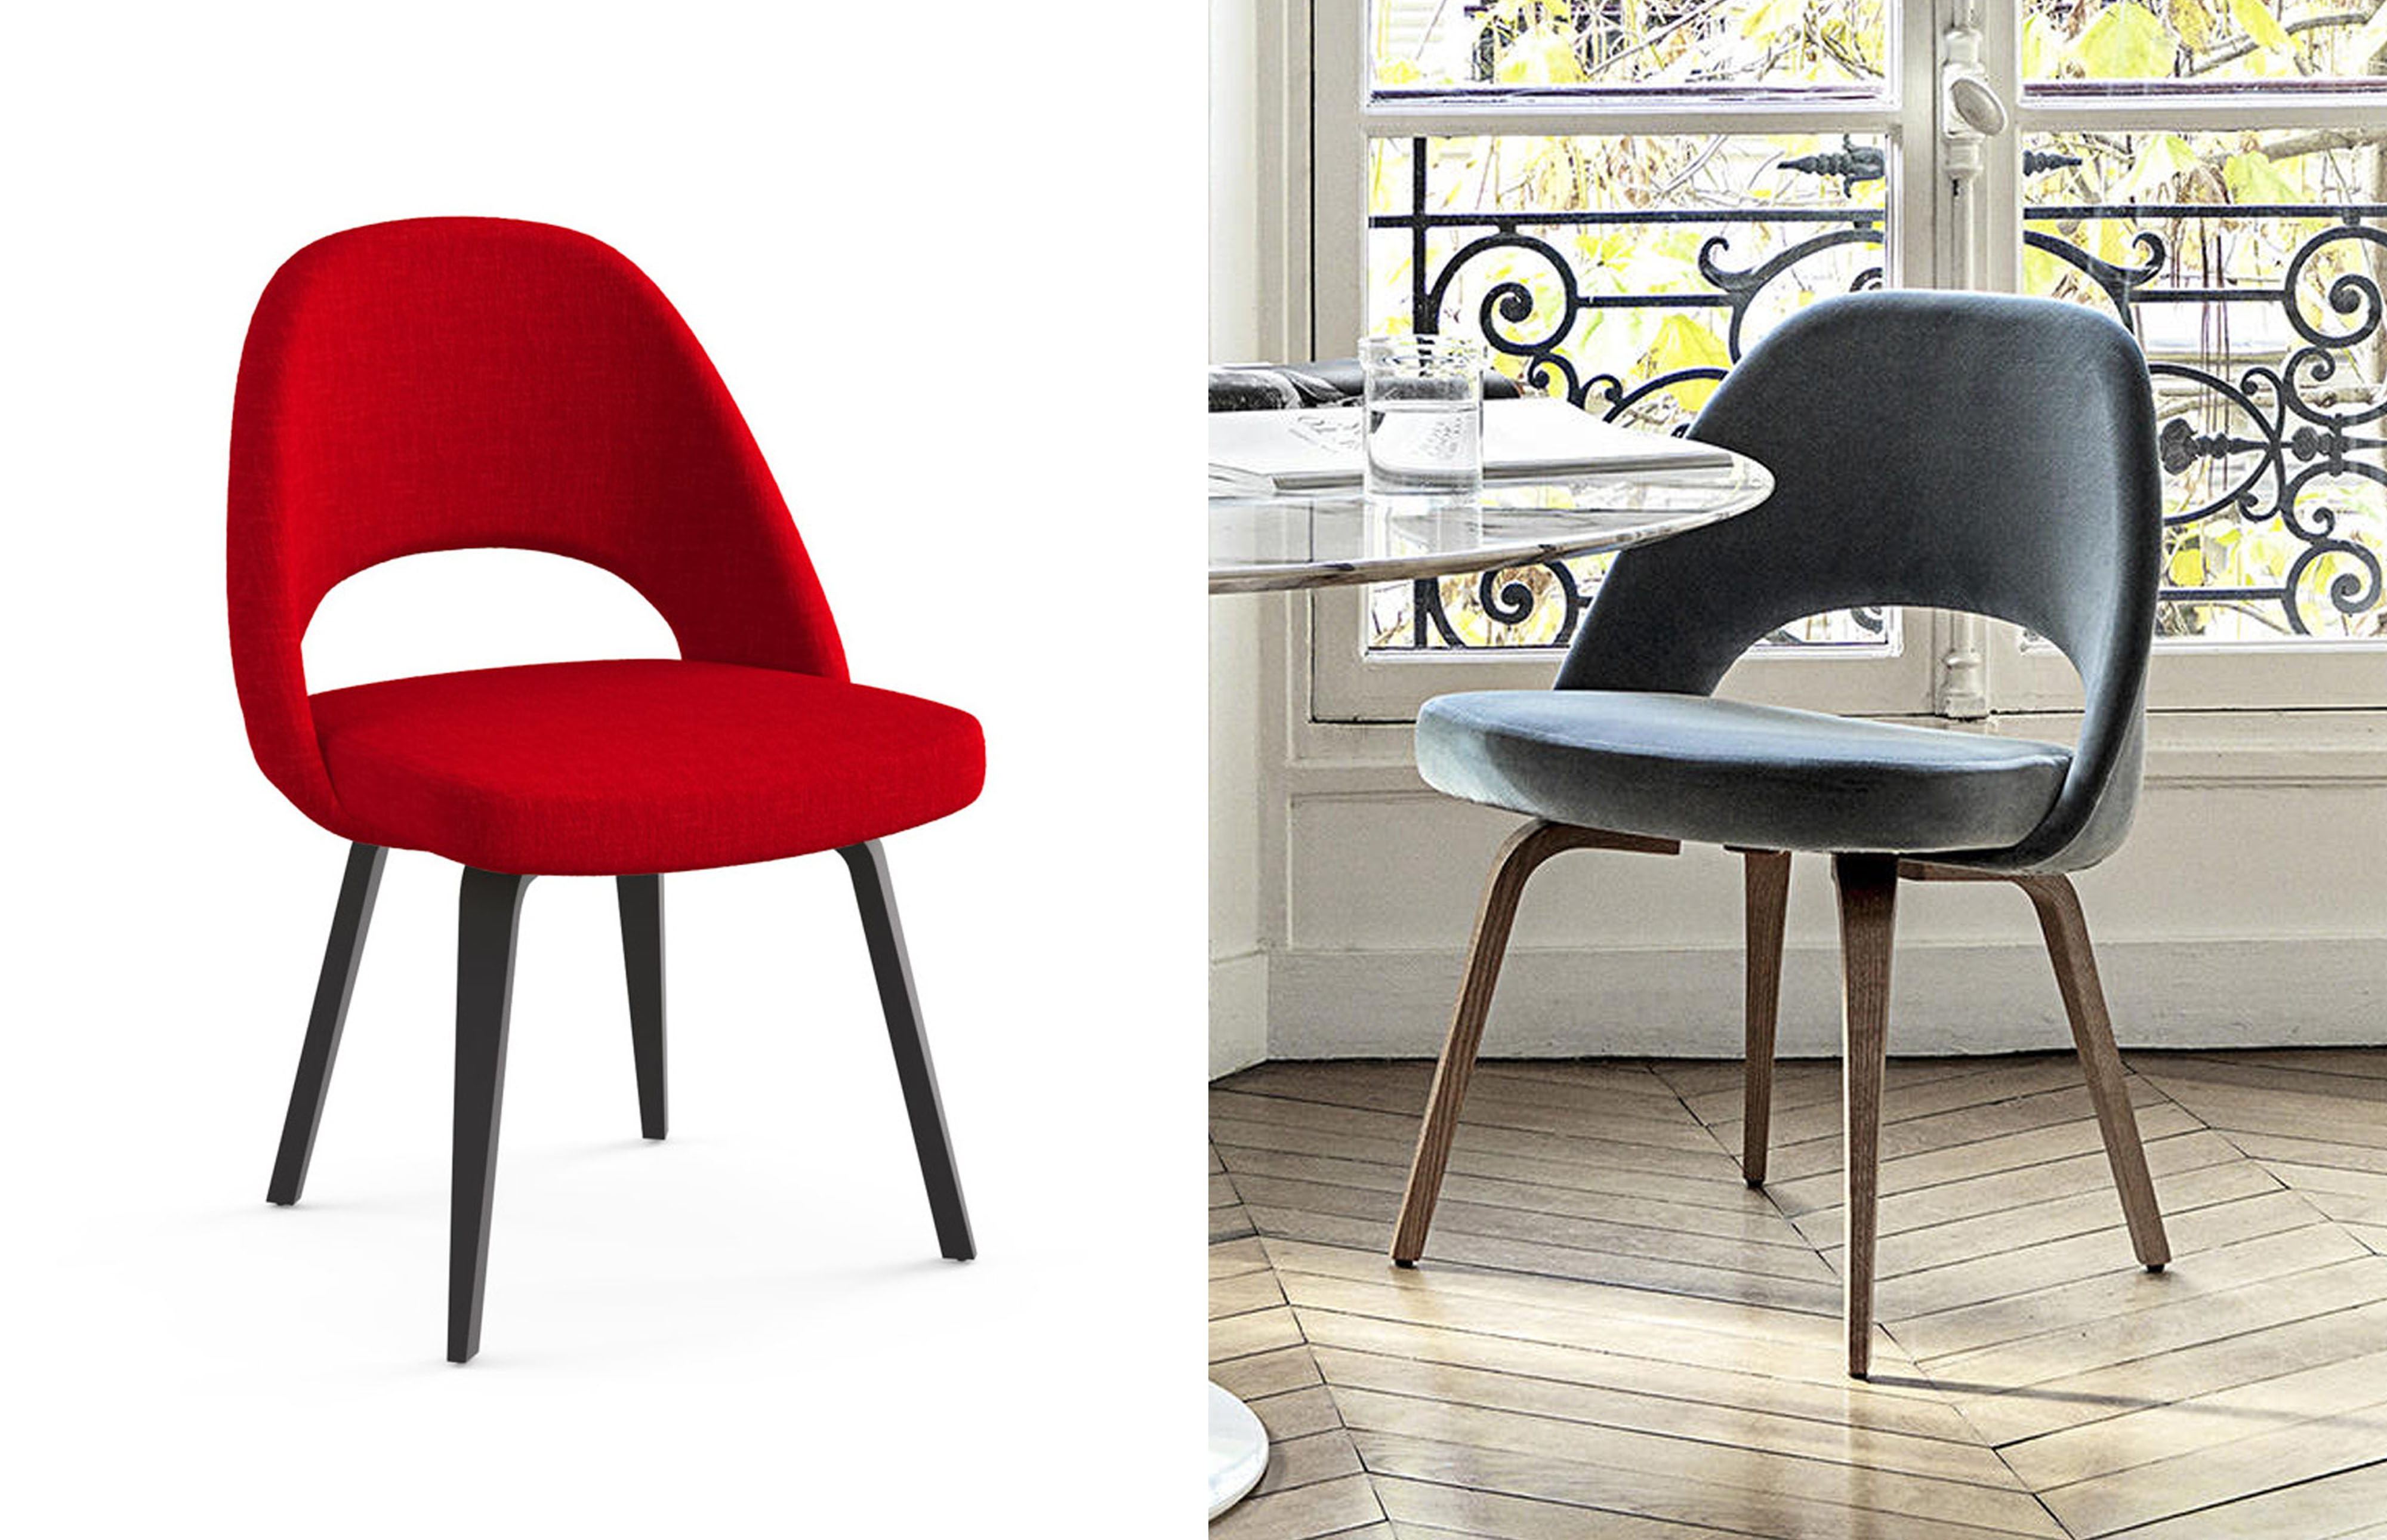 knoll-conference-chair